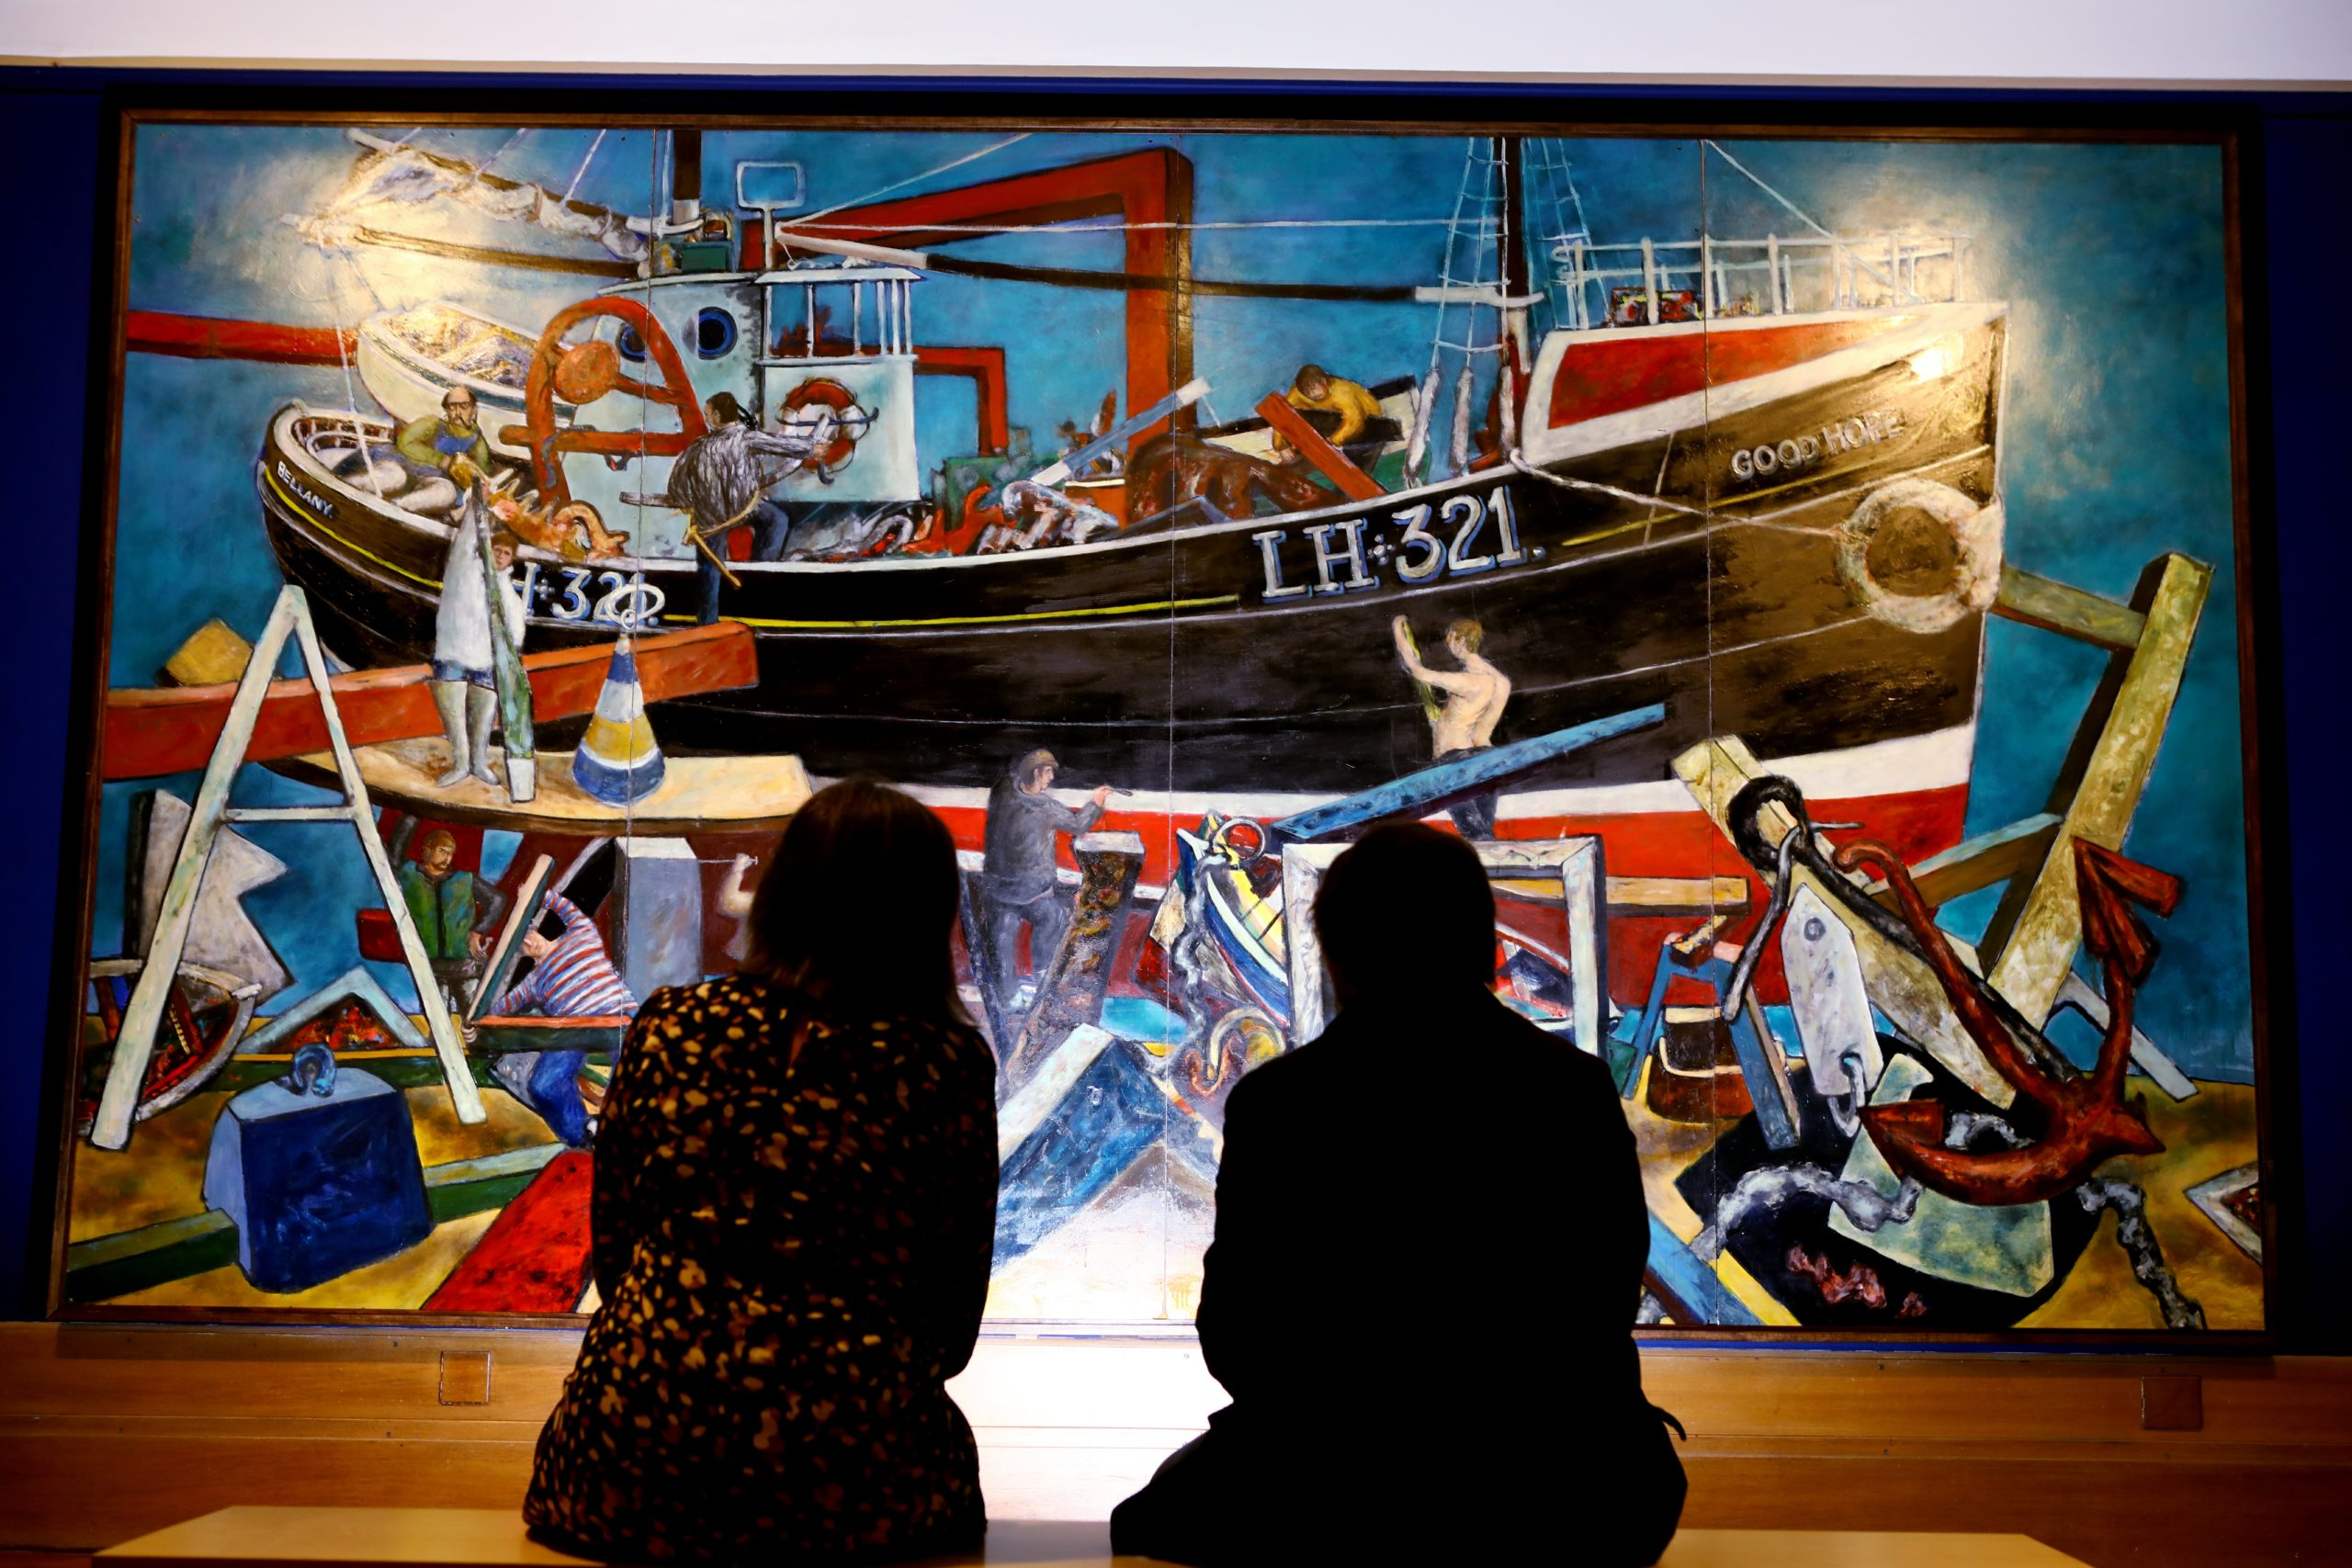 the painting 'The Boat Builders' by John Bellany, in the Icons II exhibition, at the Perth Museum & Art Gallery